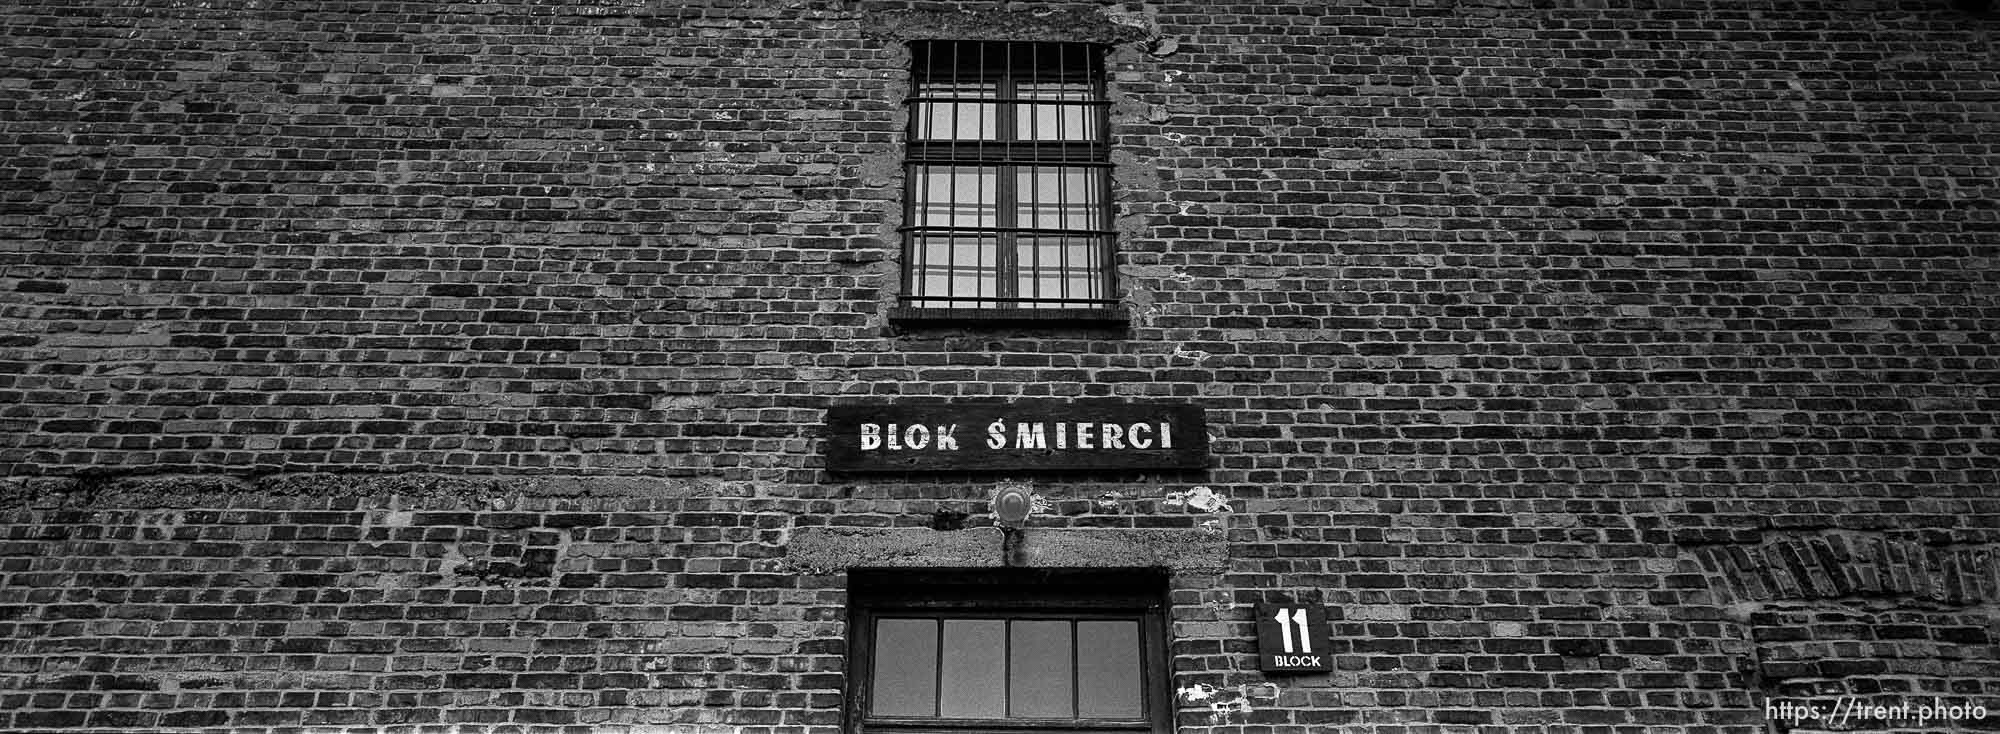 the Death Block (11) at the Auschwitz Concentration Camp.